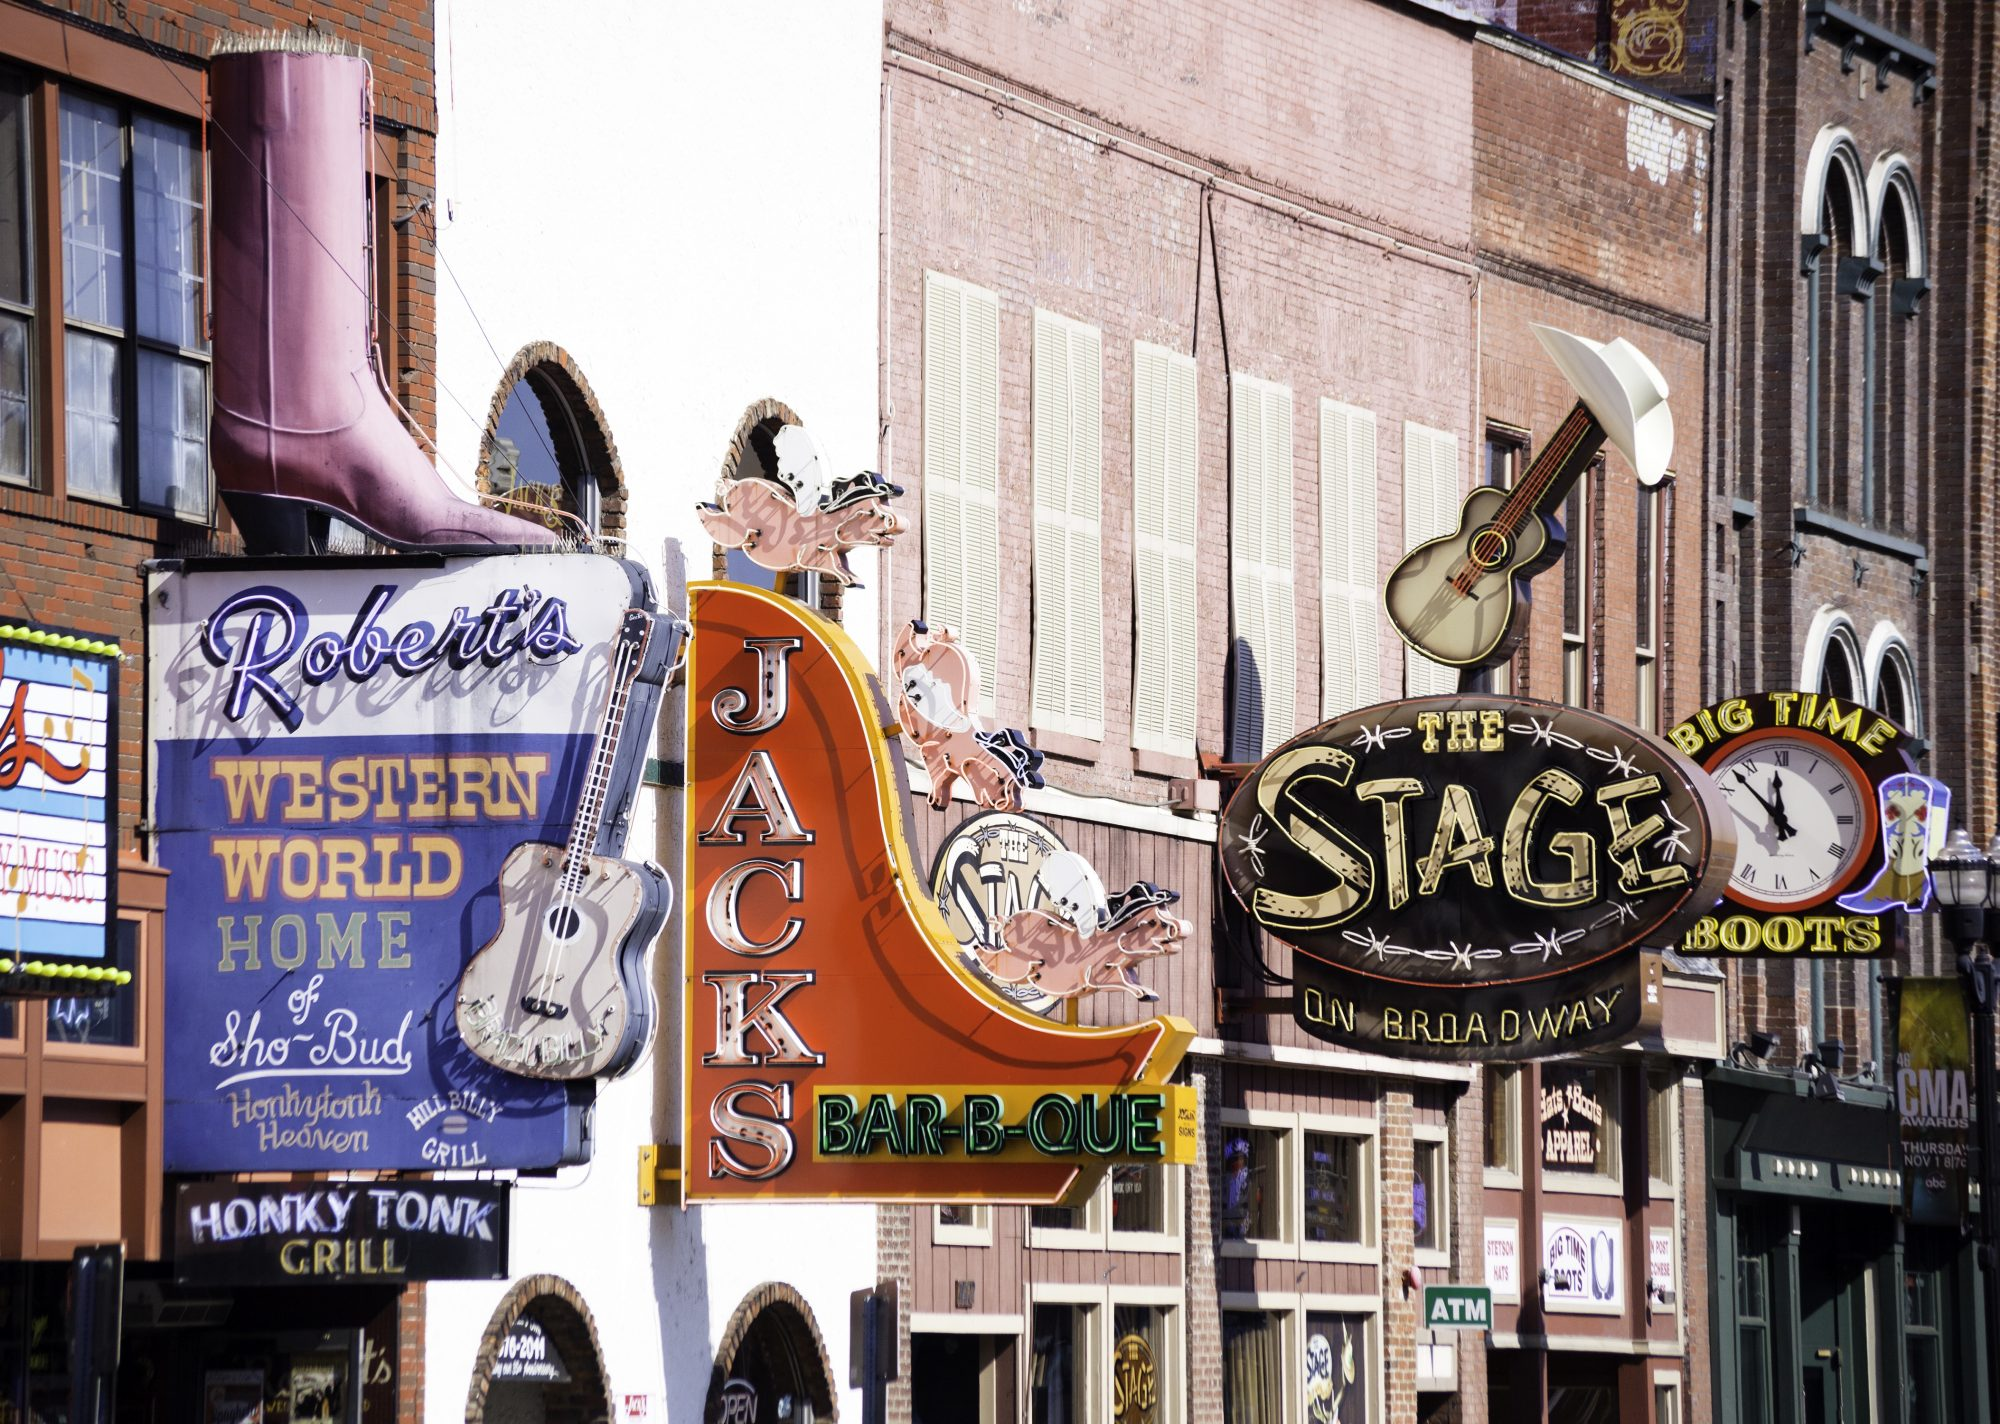 different colorful signs identificates shops and Honky Tonk bars located on Broadway Street in Nashville